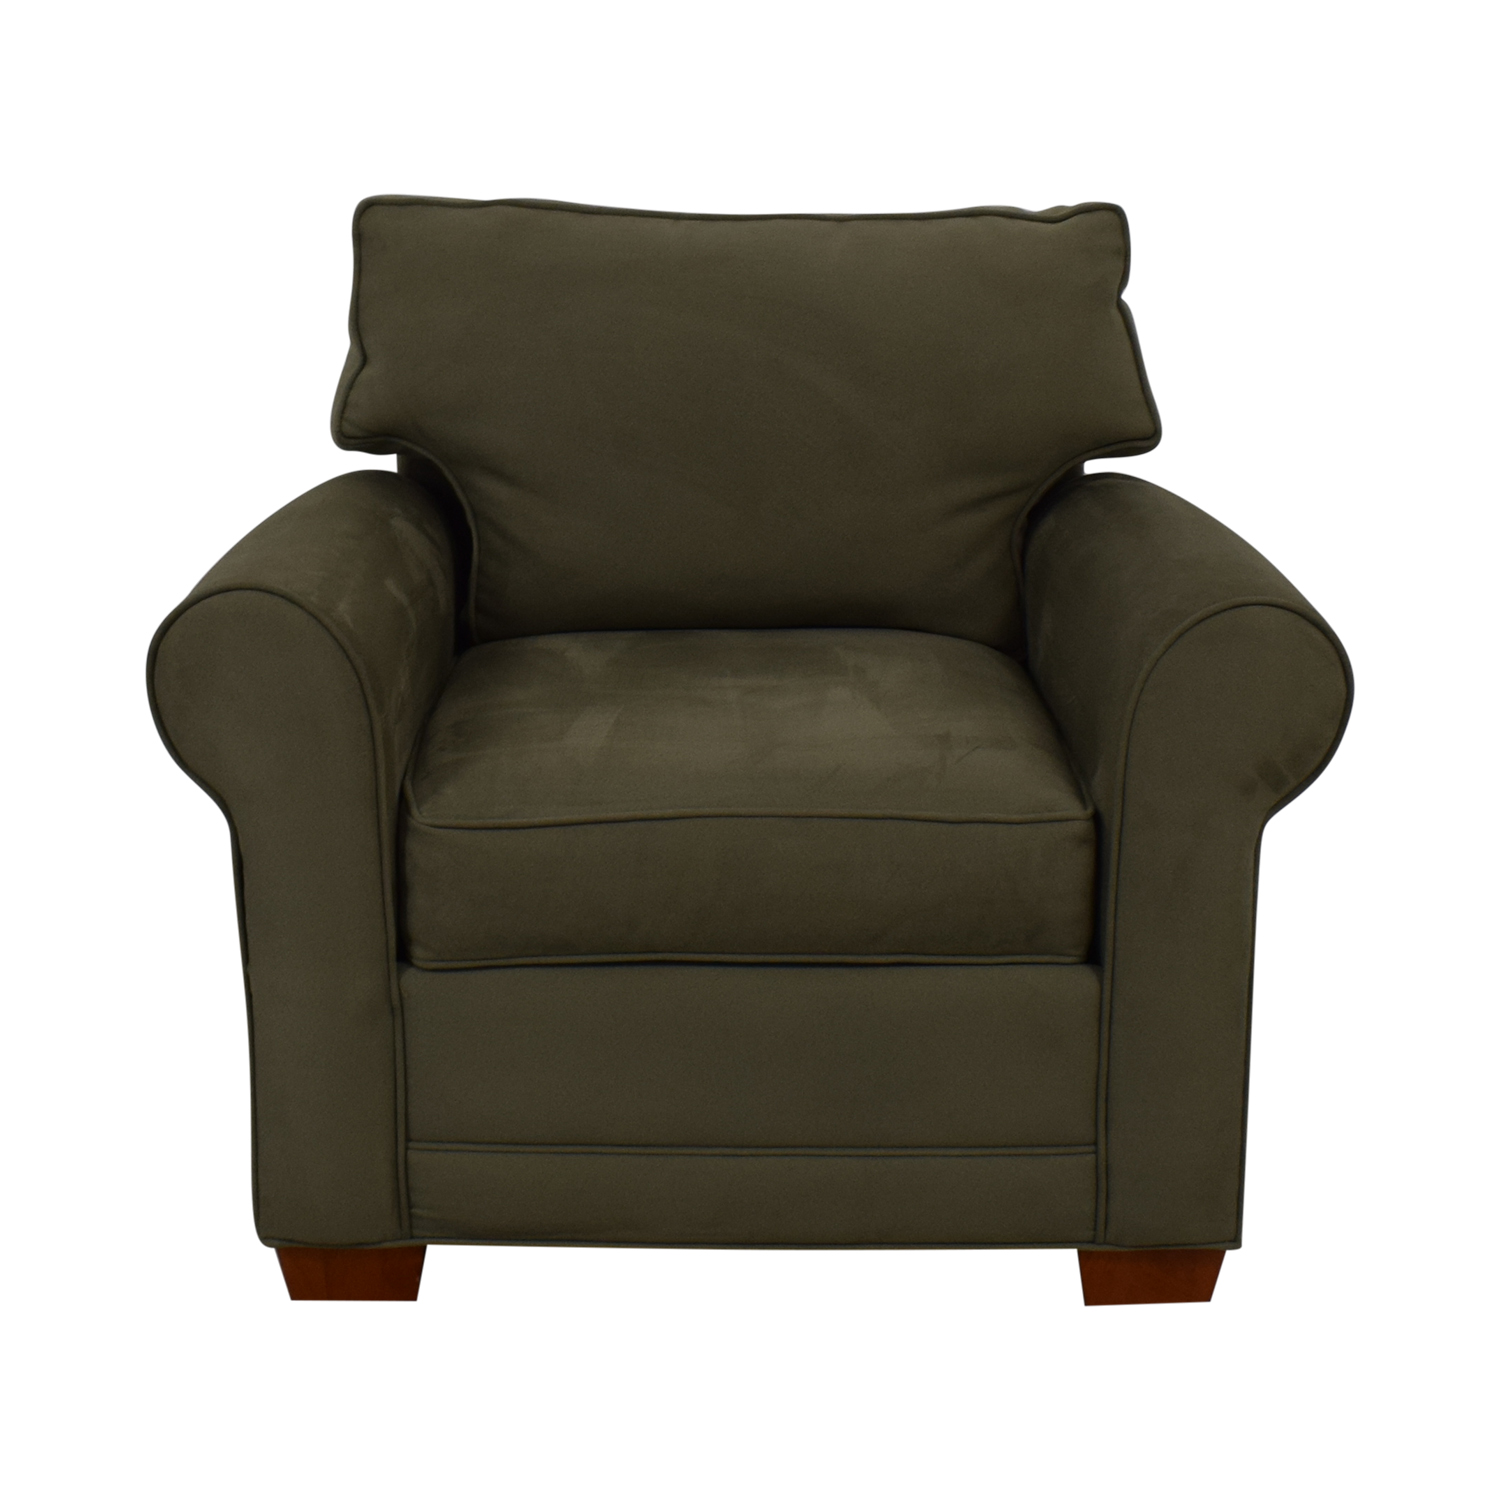 shop Raymour & Flanigan Raymour & Flanigan Green Accent Chair online